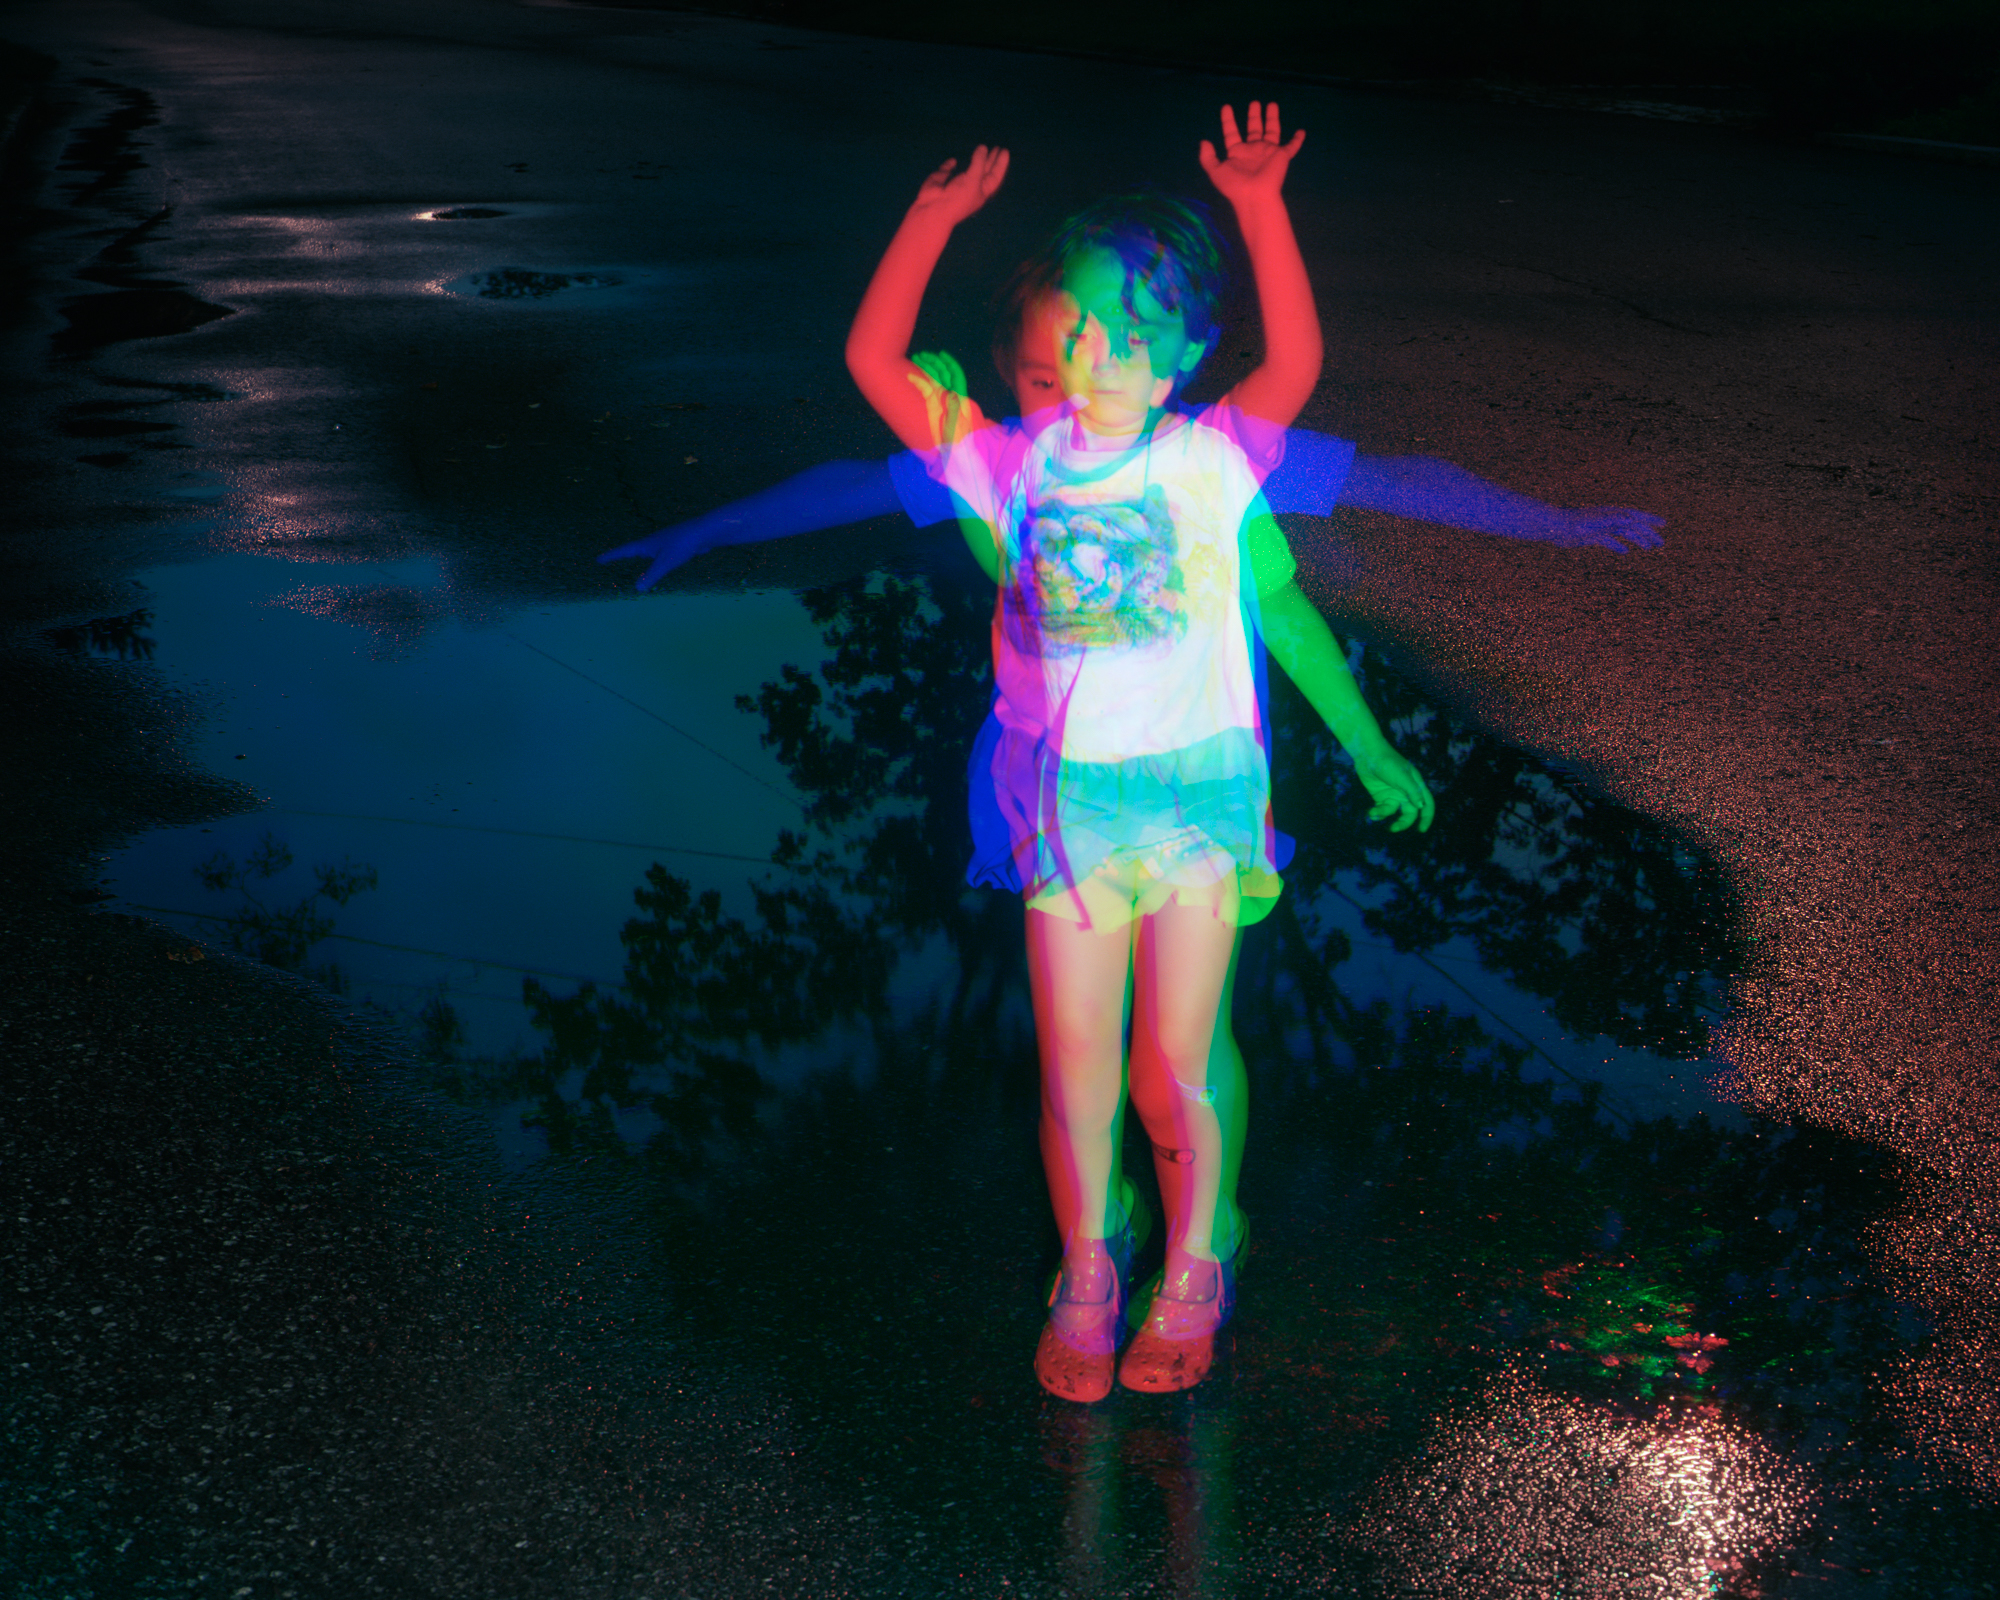 Puddle Stomp , 2015 Archival pigment print 19 x 23.75 in (48.26 x 60.33 cm)